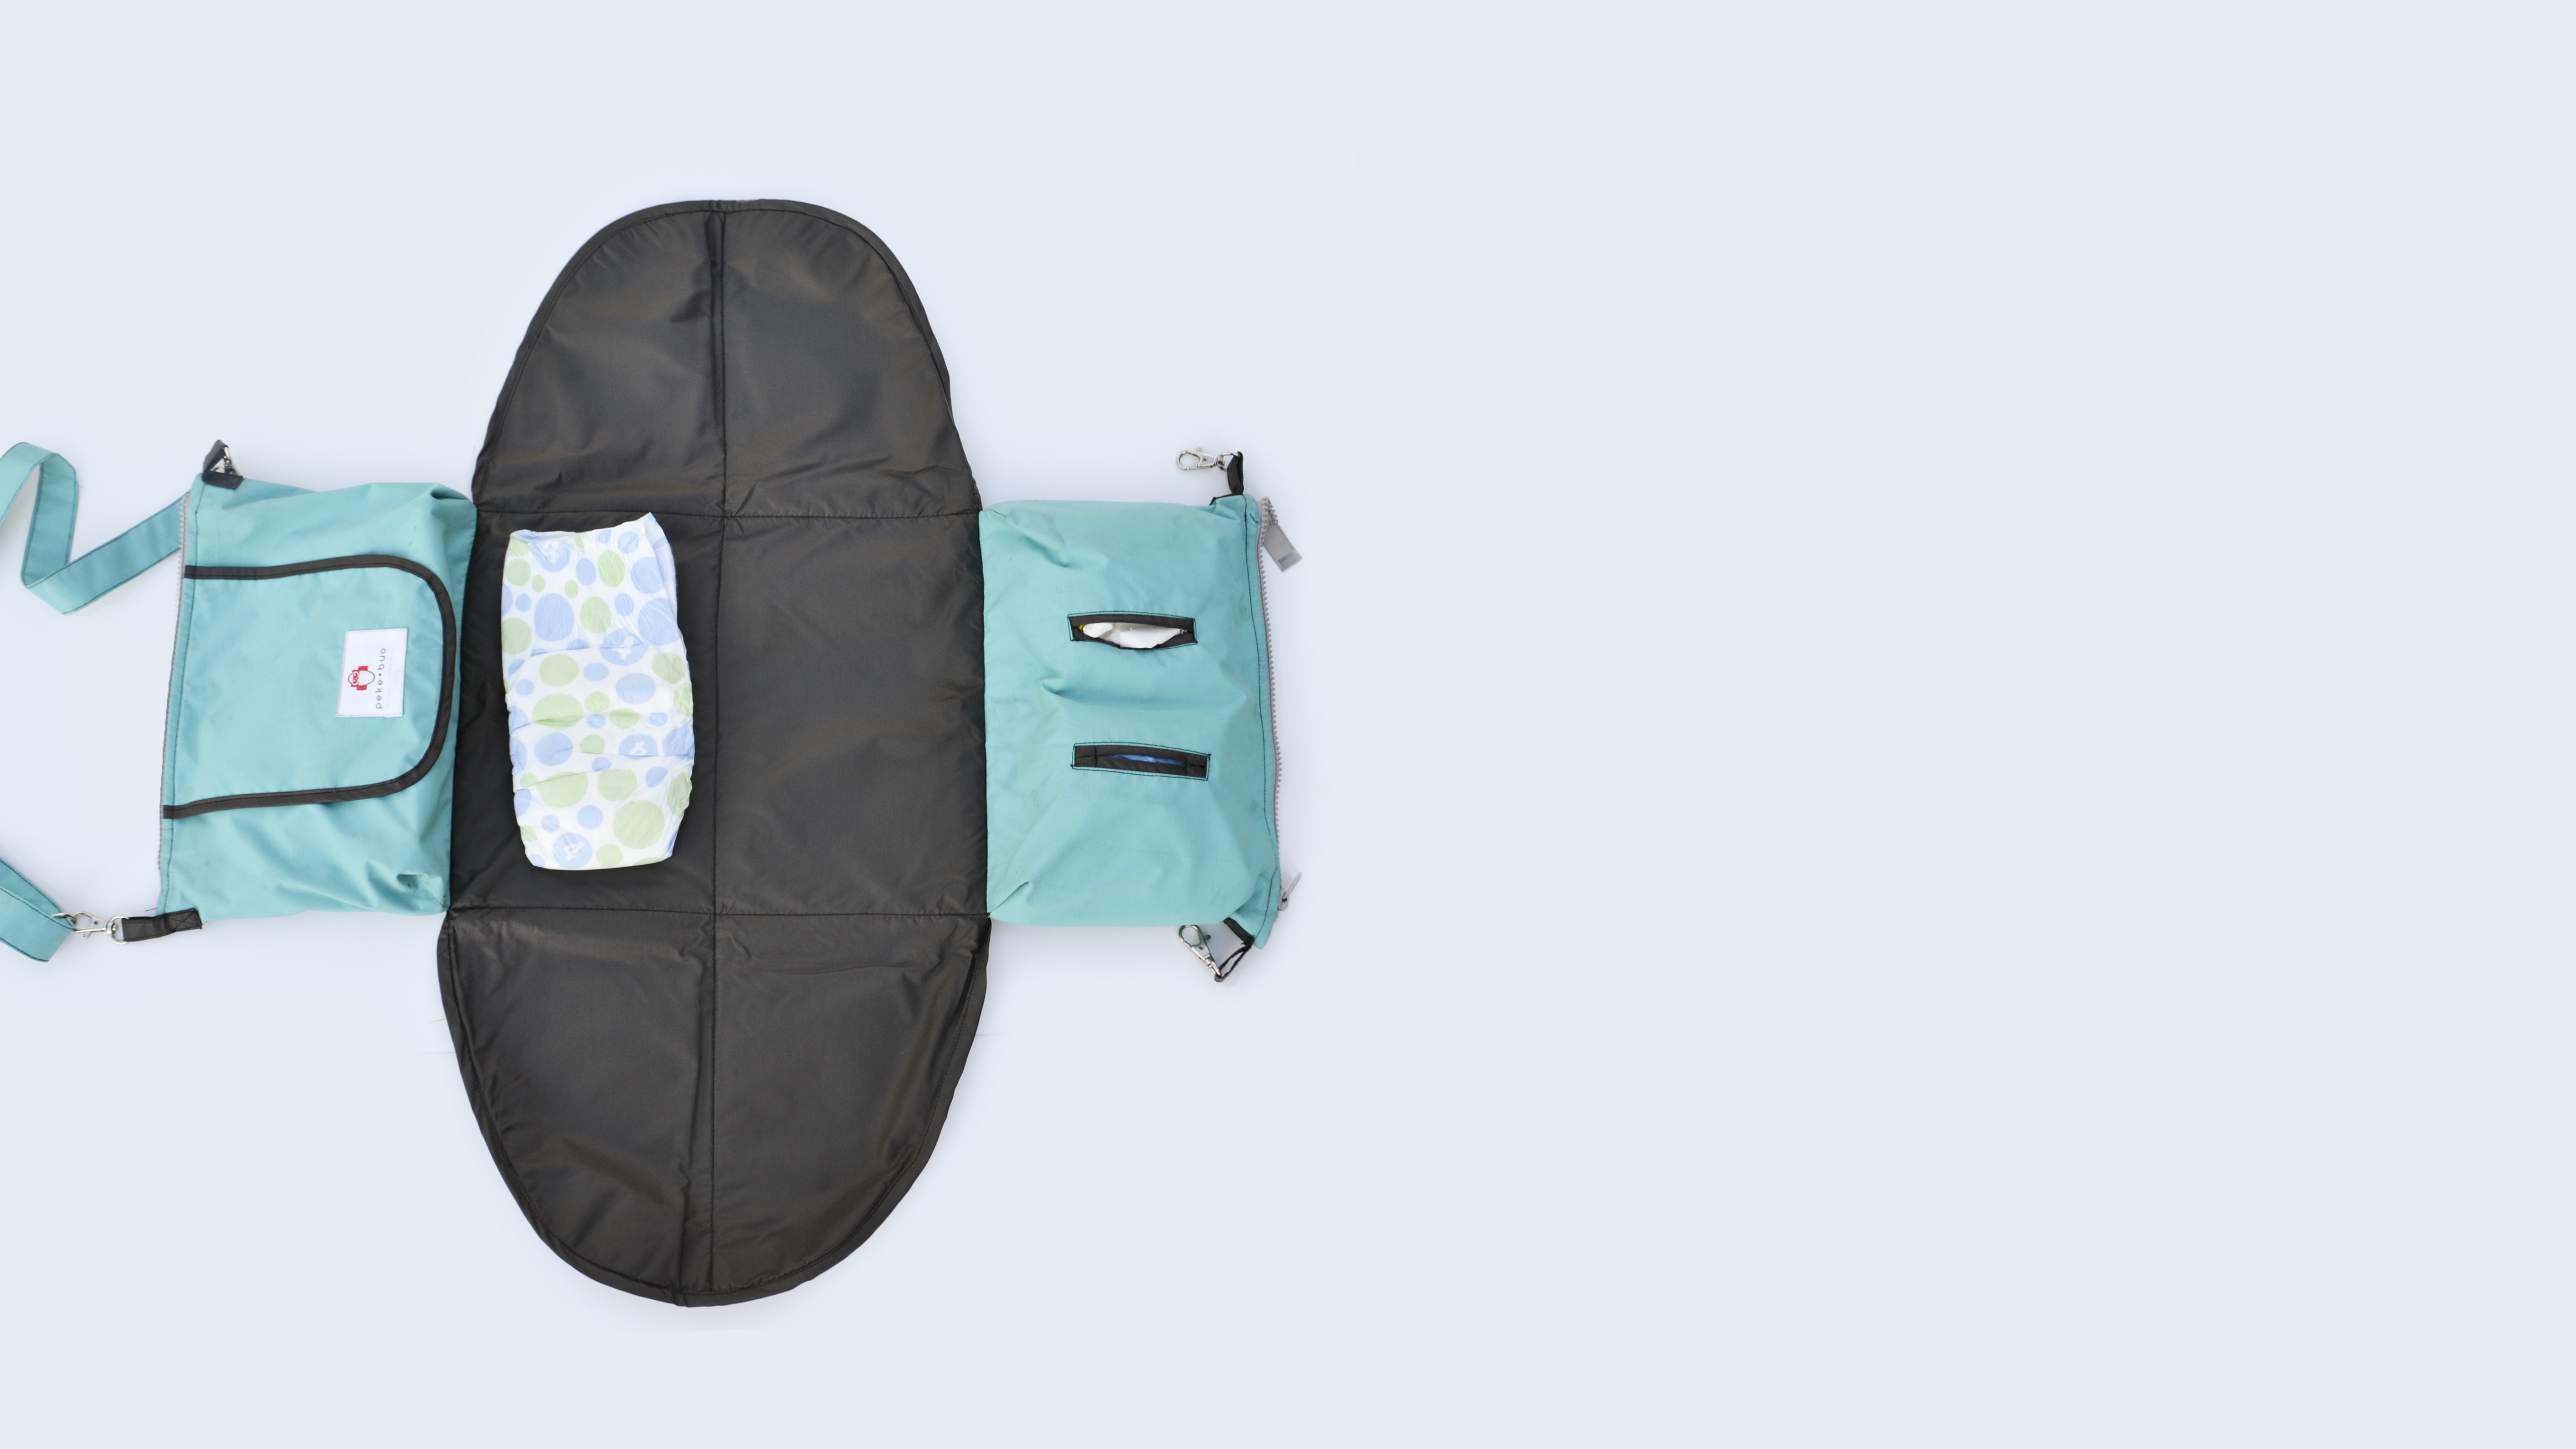 Peke Bou is a student startup selling an innovative diaper bag.